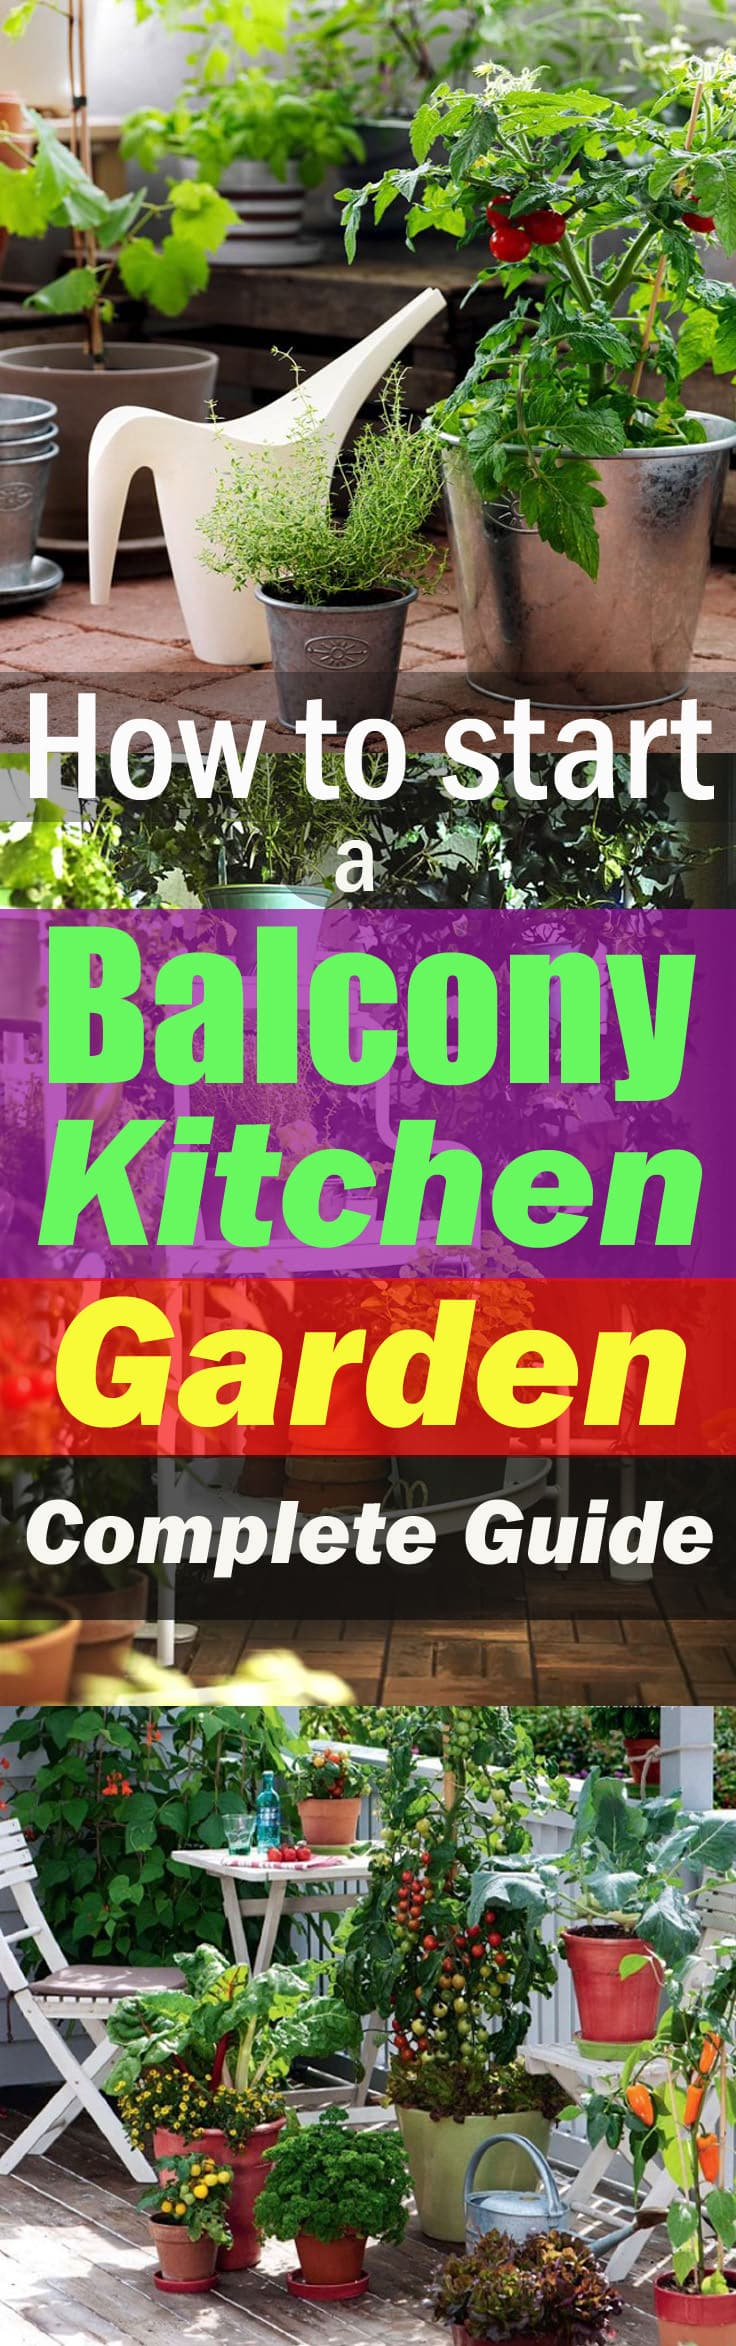 Organic Kitchen Garden How To Start A Balcony Kitchen Garden Complete Guide Balcony